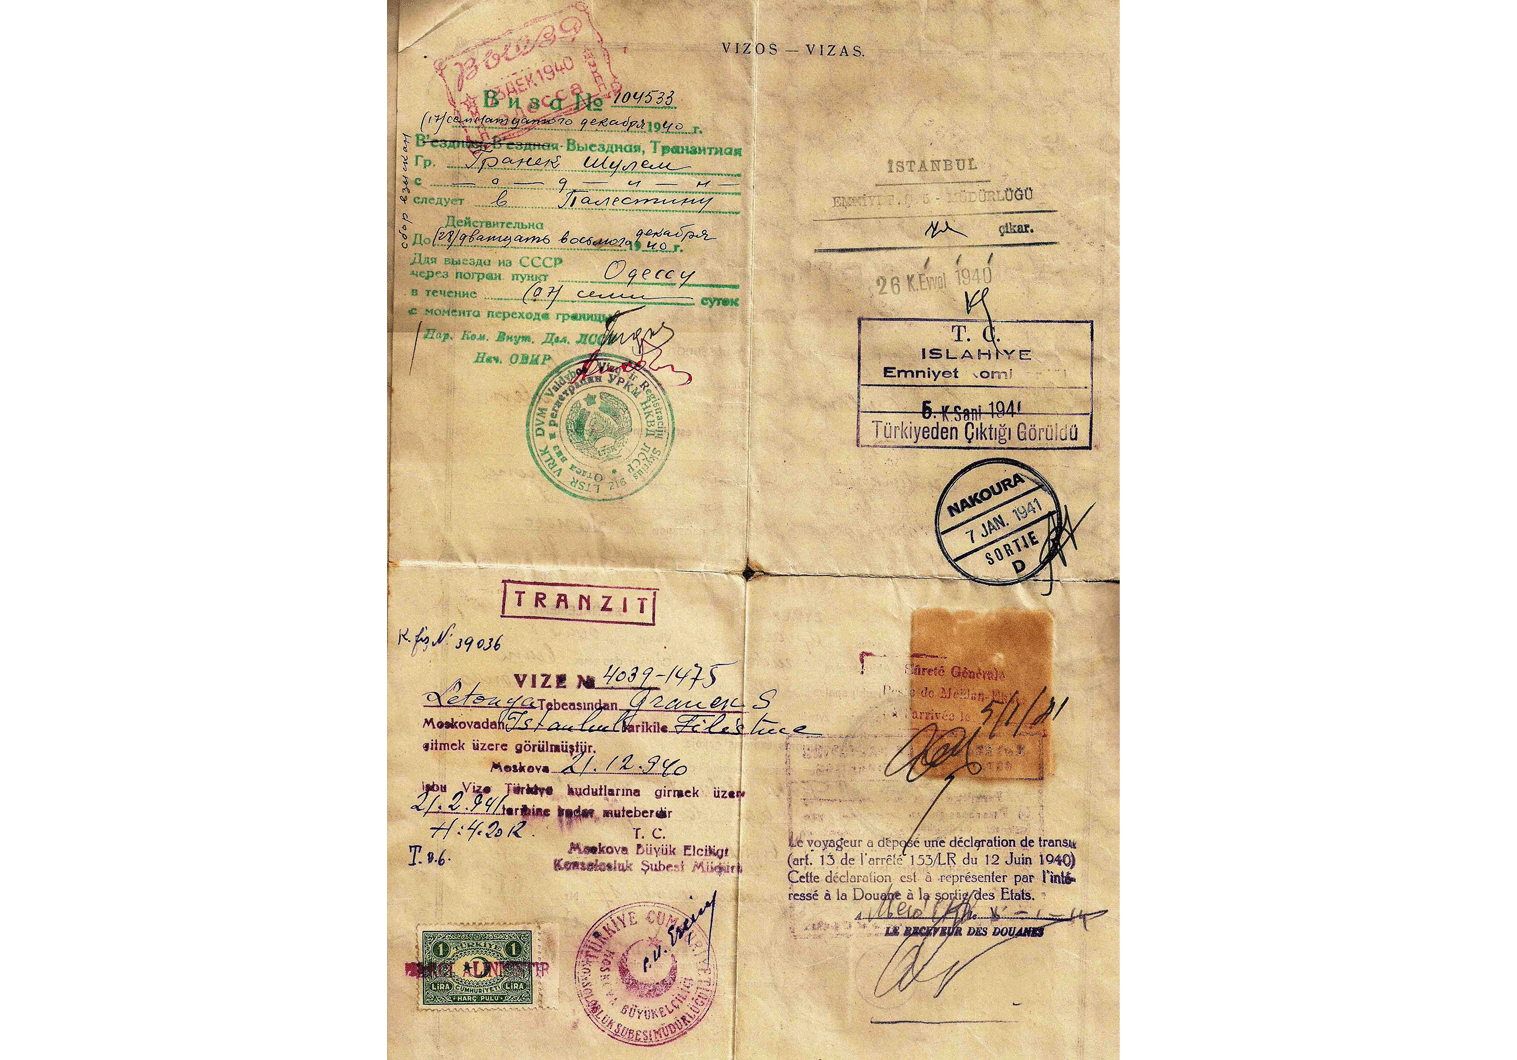 1940 Lithuanian Refugee travel certificate